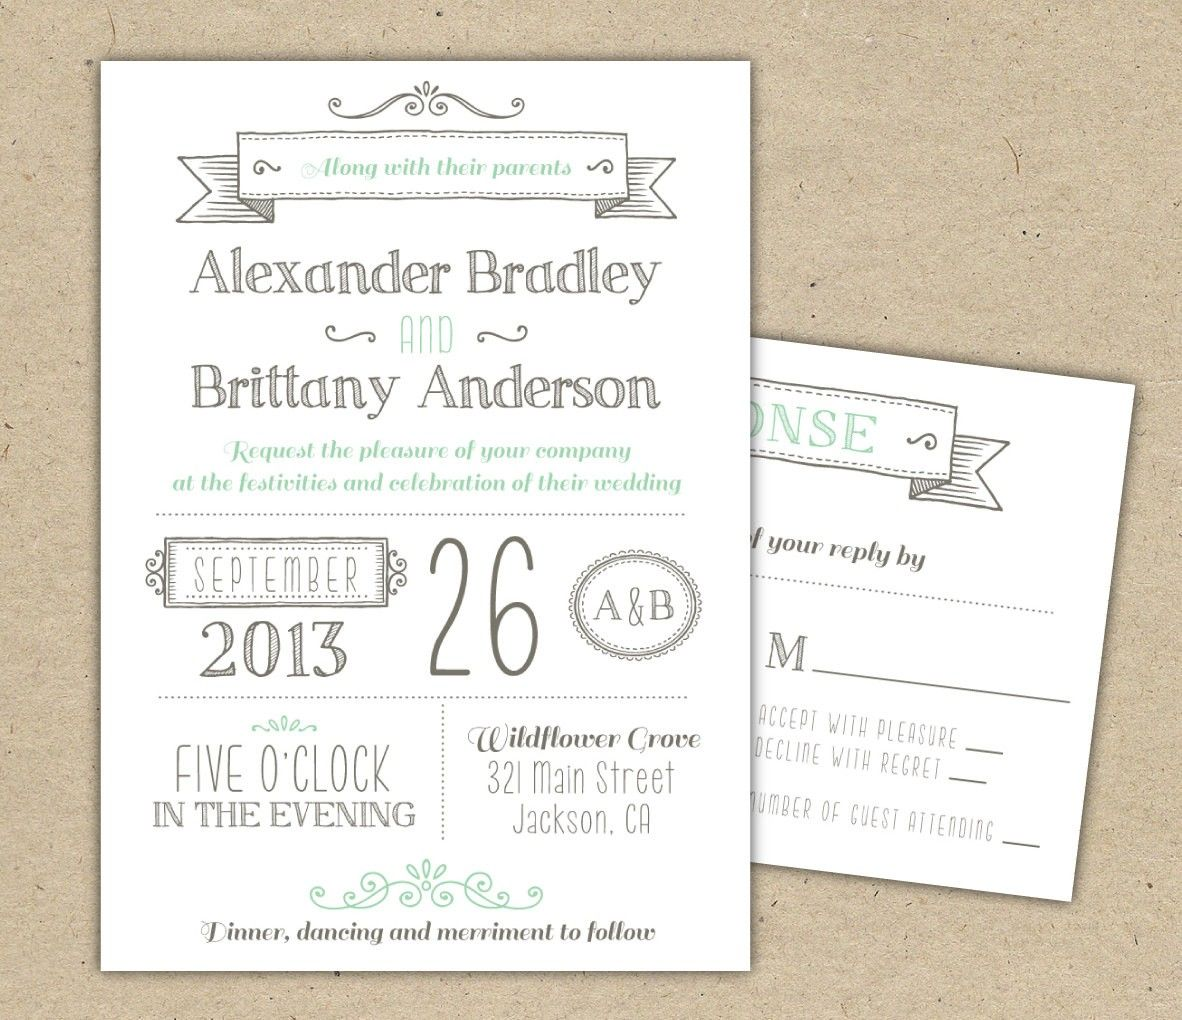 free printable wedding invitation layout carsforum izepmom, Wedding invitations